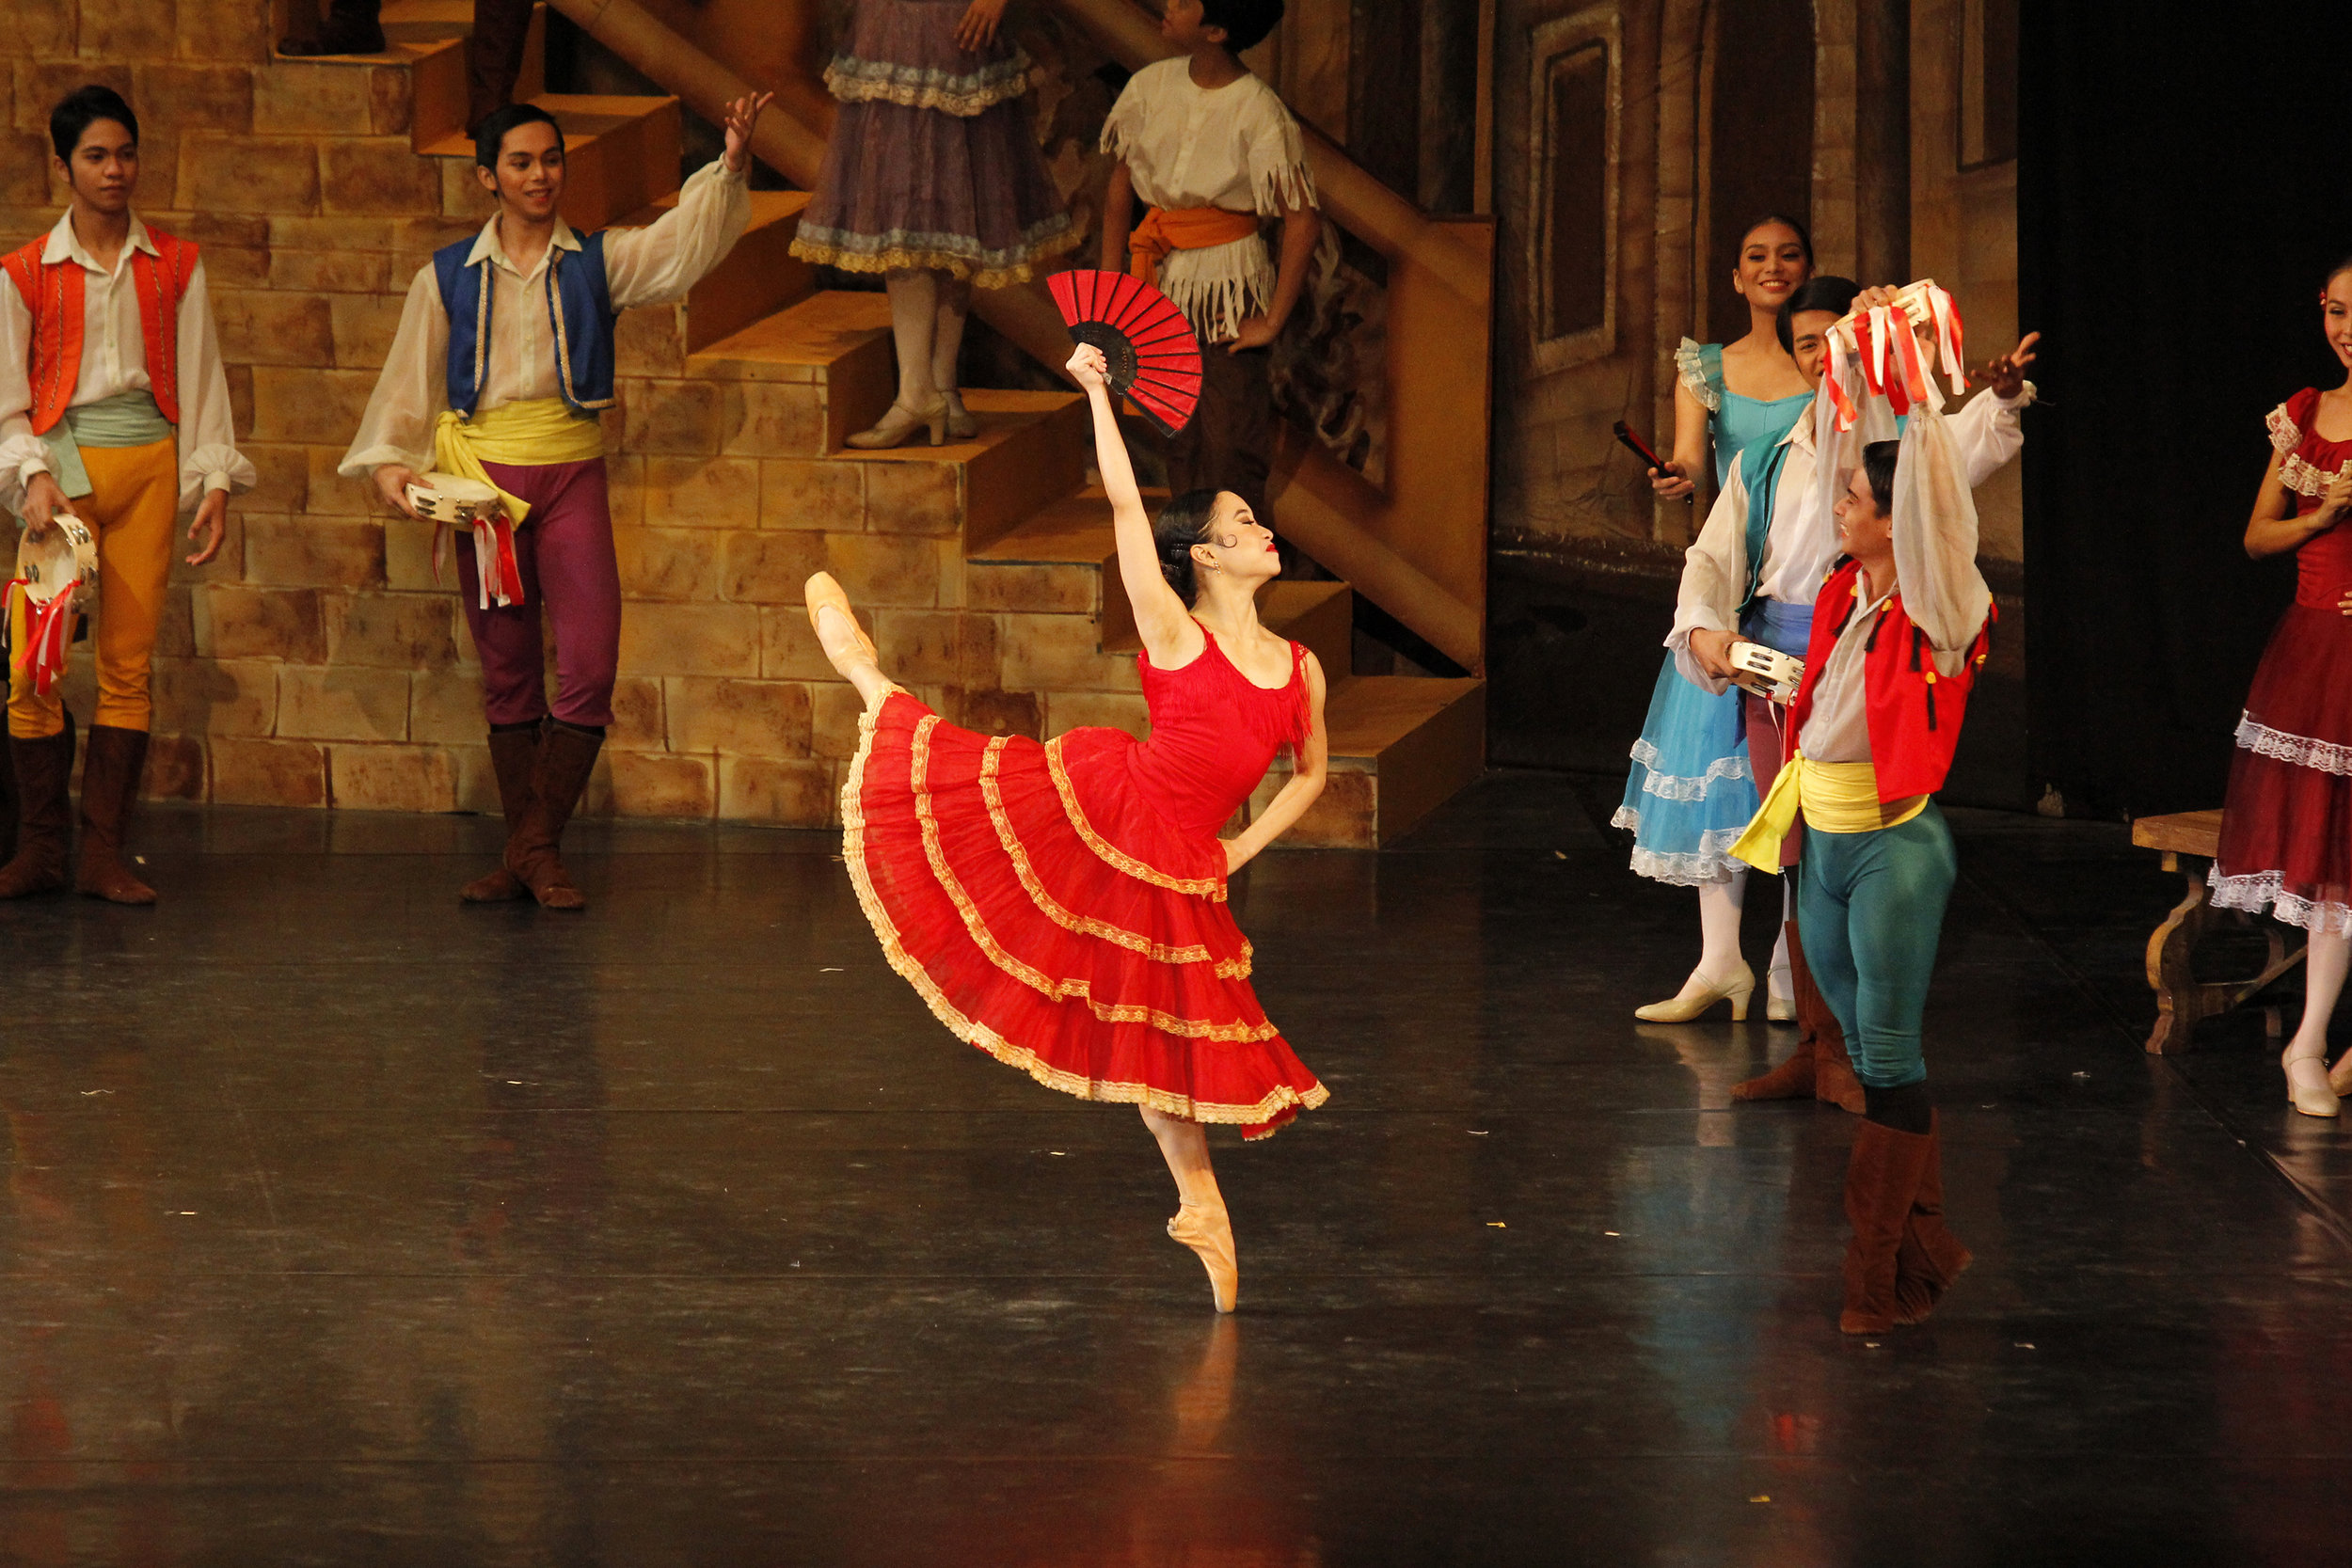 Dancing as Kitri in the full-length  Don Quixote  in 2017 was a good fit for Pia as she is feisty in real life. Photo by Ocs Alvarez